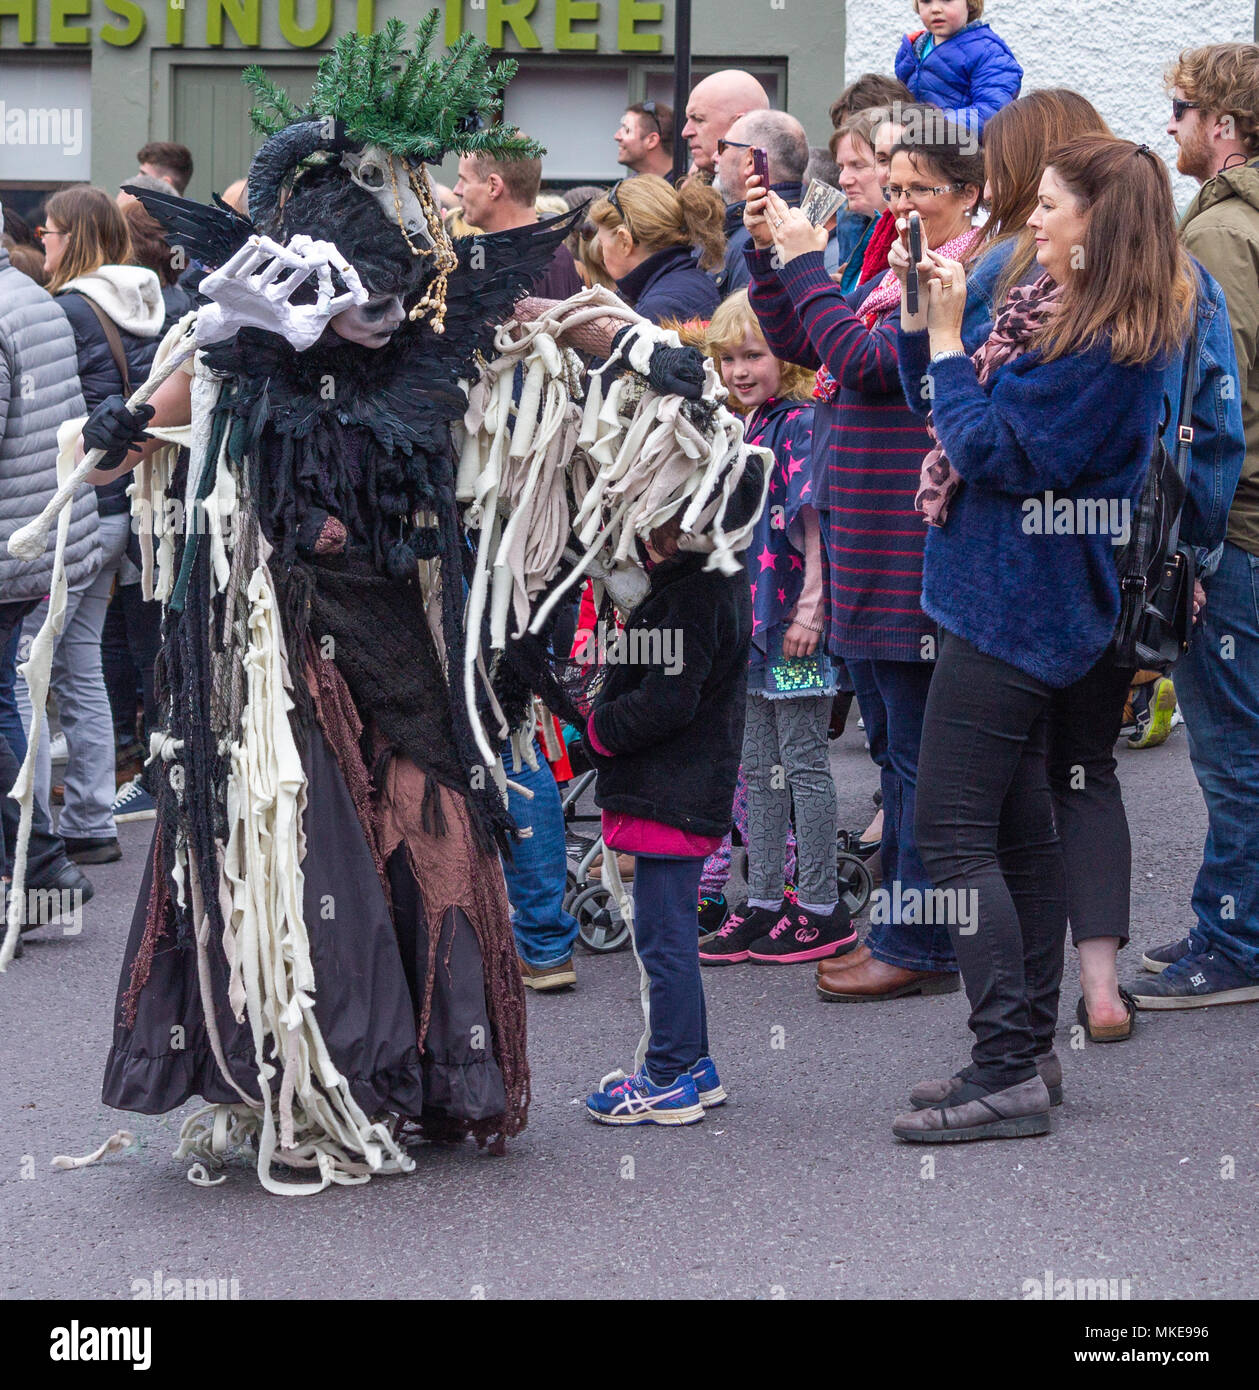 colourfully-dressed-street-performer-part-of-a-jazz-festival-procession-dressed-up-as-a-witch-dancing-in-the-street-of-ballydehob-ireland-MKE996.jpg